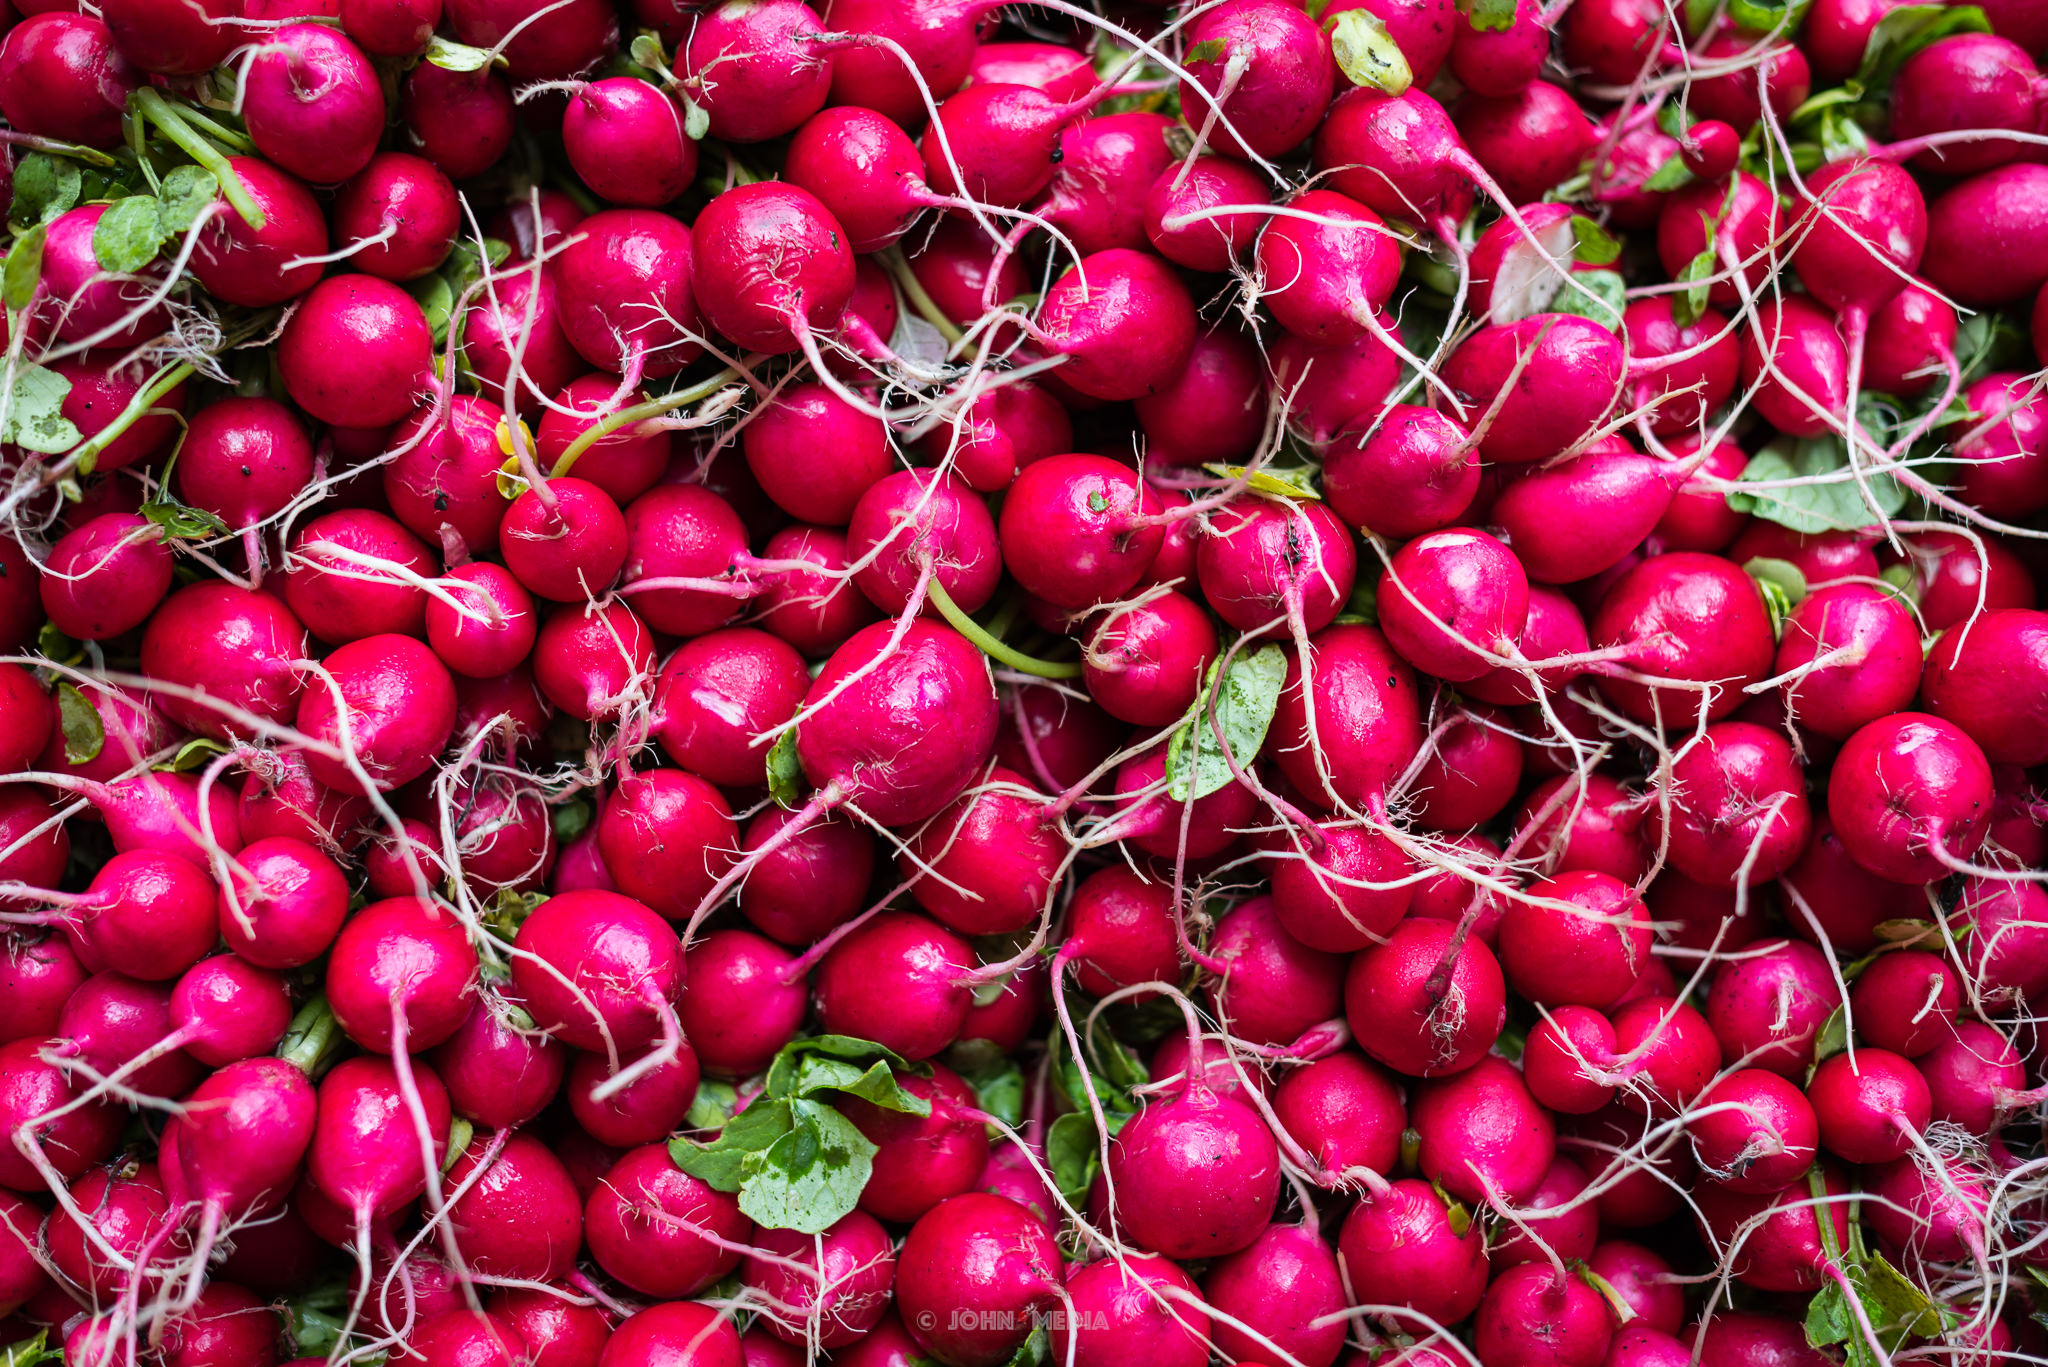 New York Groceries - Radishes